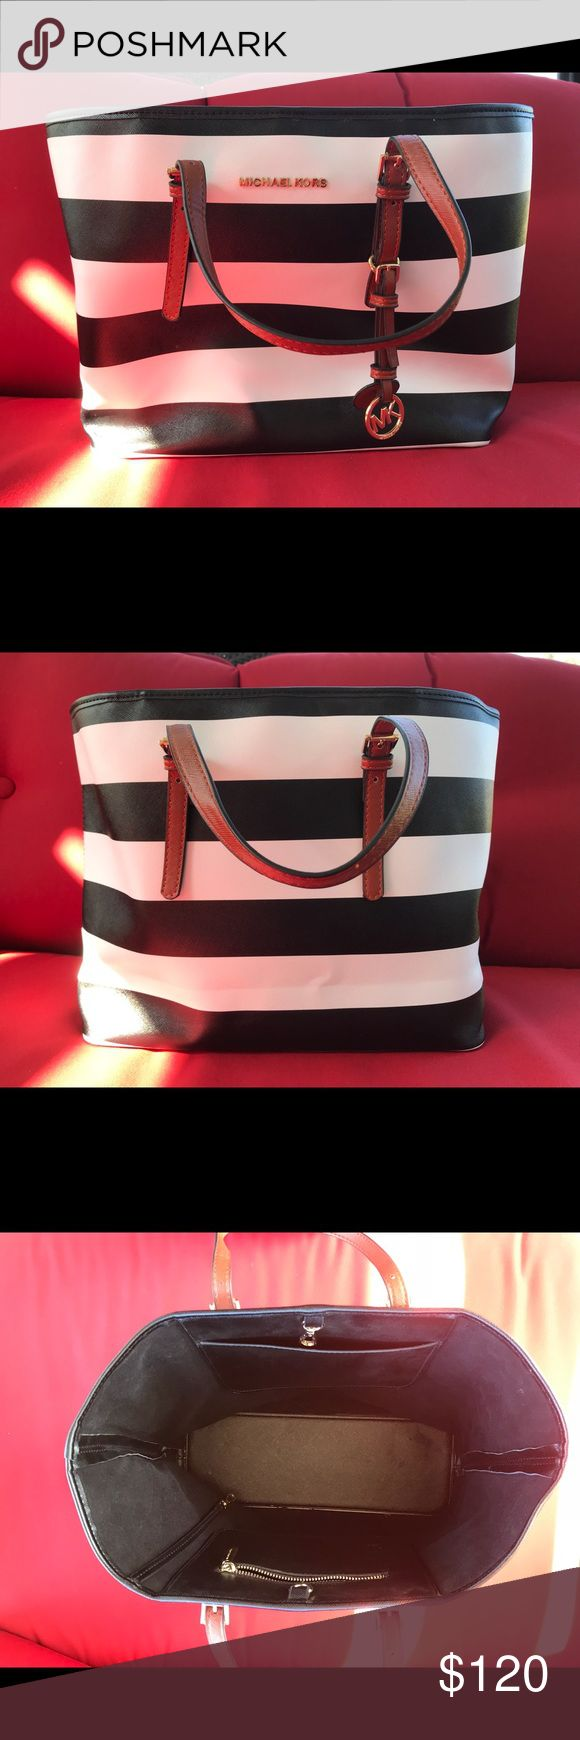 Michael Kors Tote Authentic Michael Kors Jet Set Tote >>Black & White Stripes<< Excellent Condition KORS Michael Kors Bags Totes